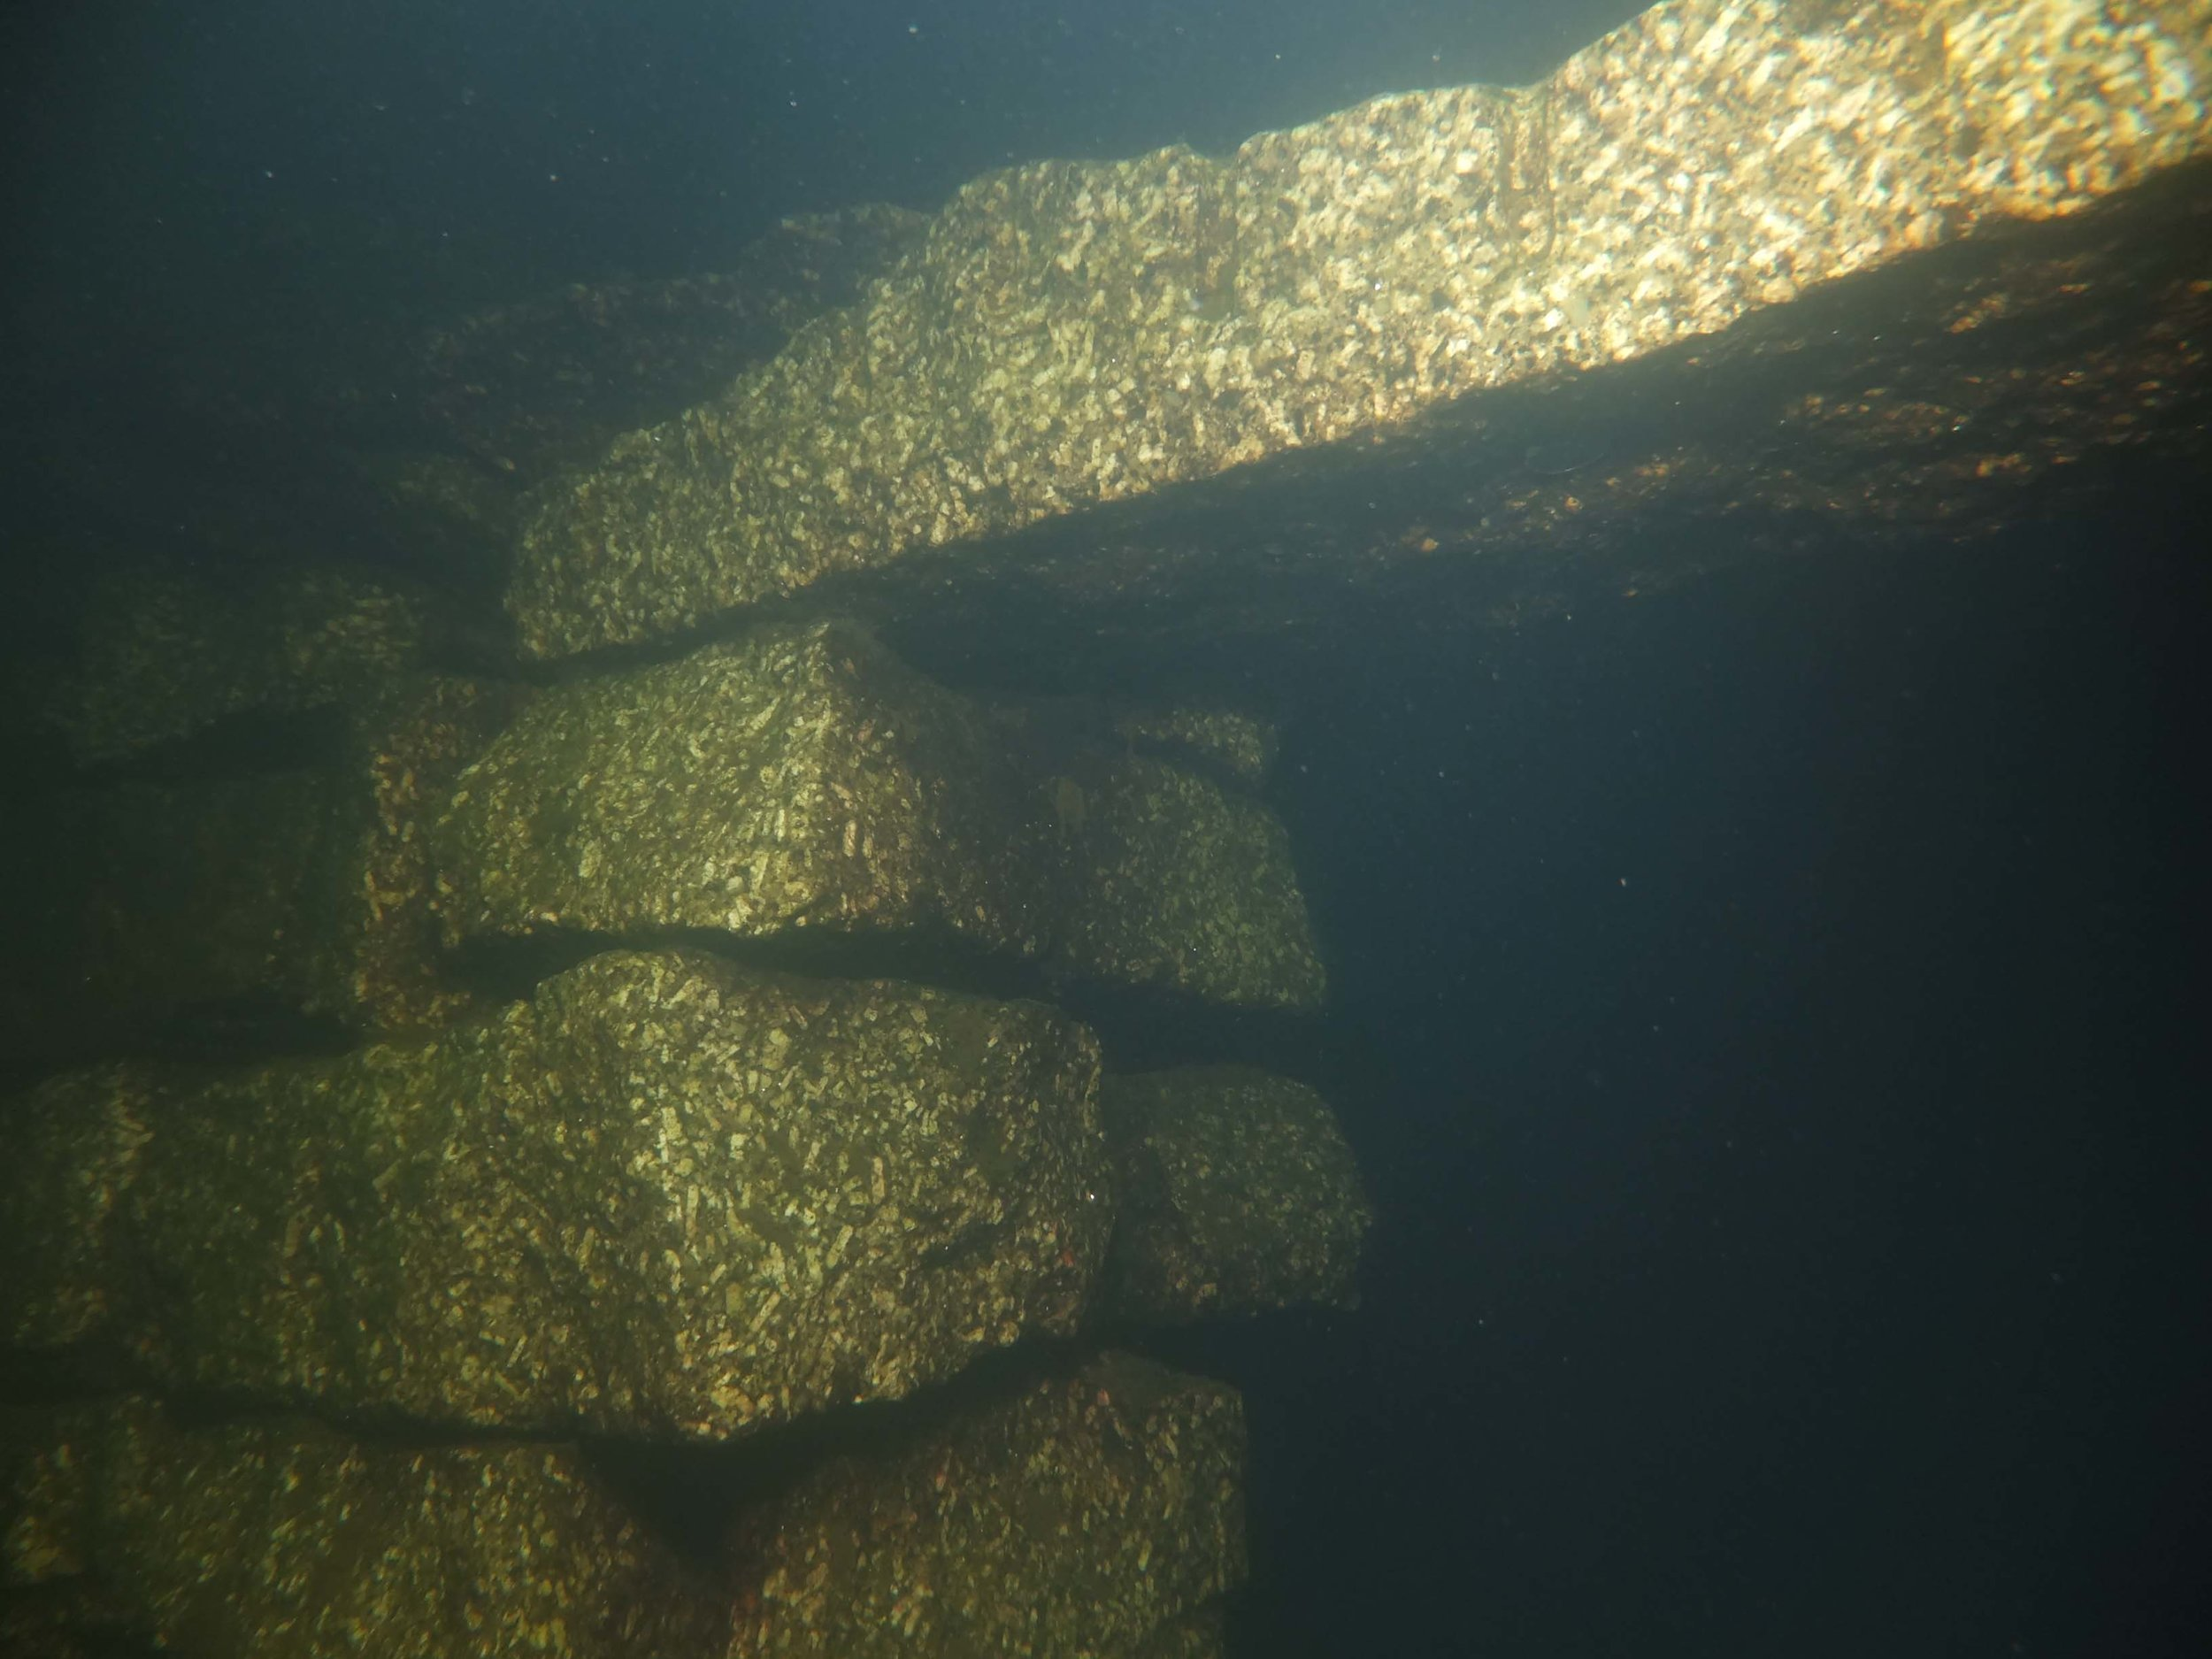 Quarry 7318 7 compressed.jpg